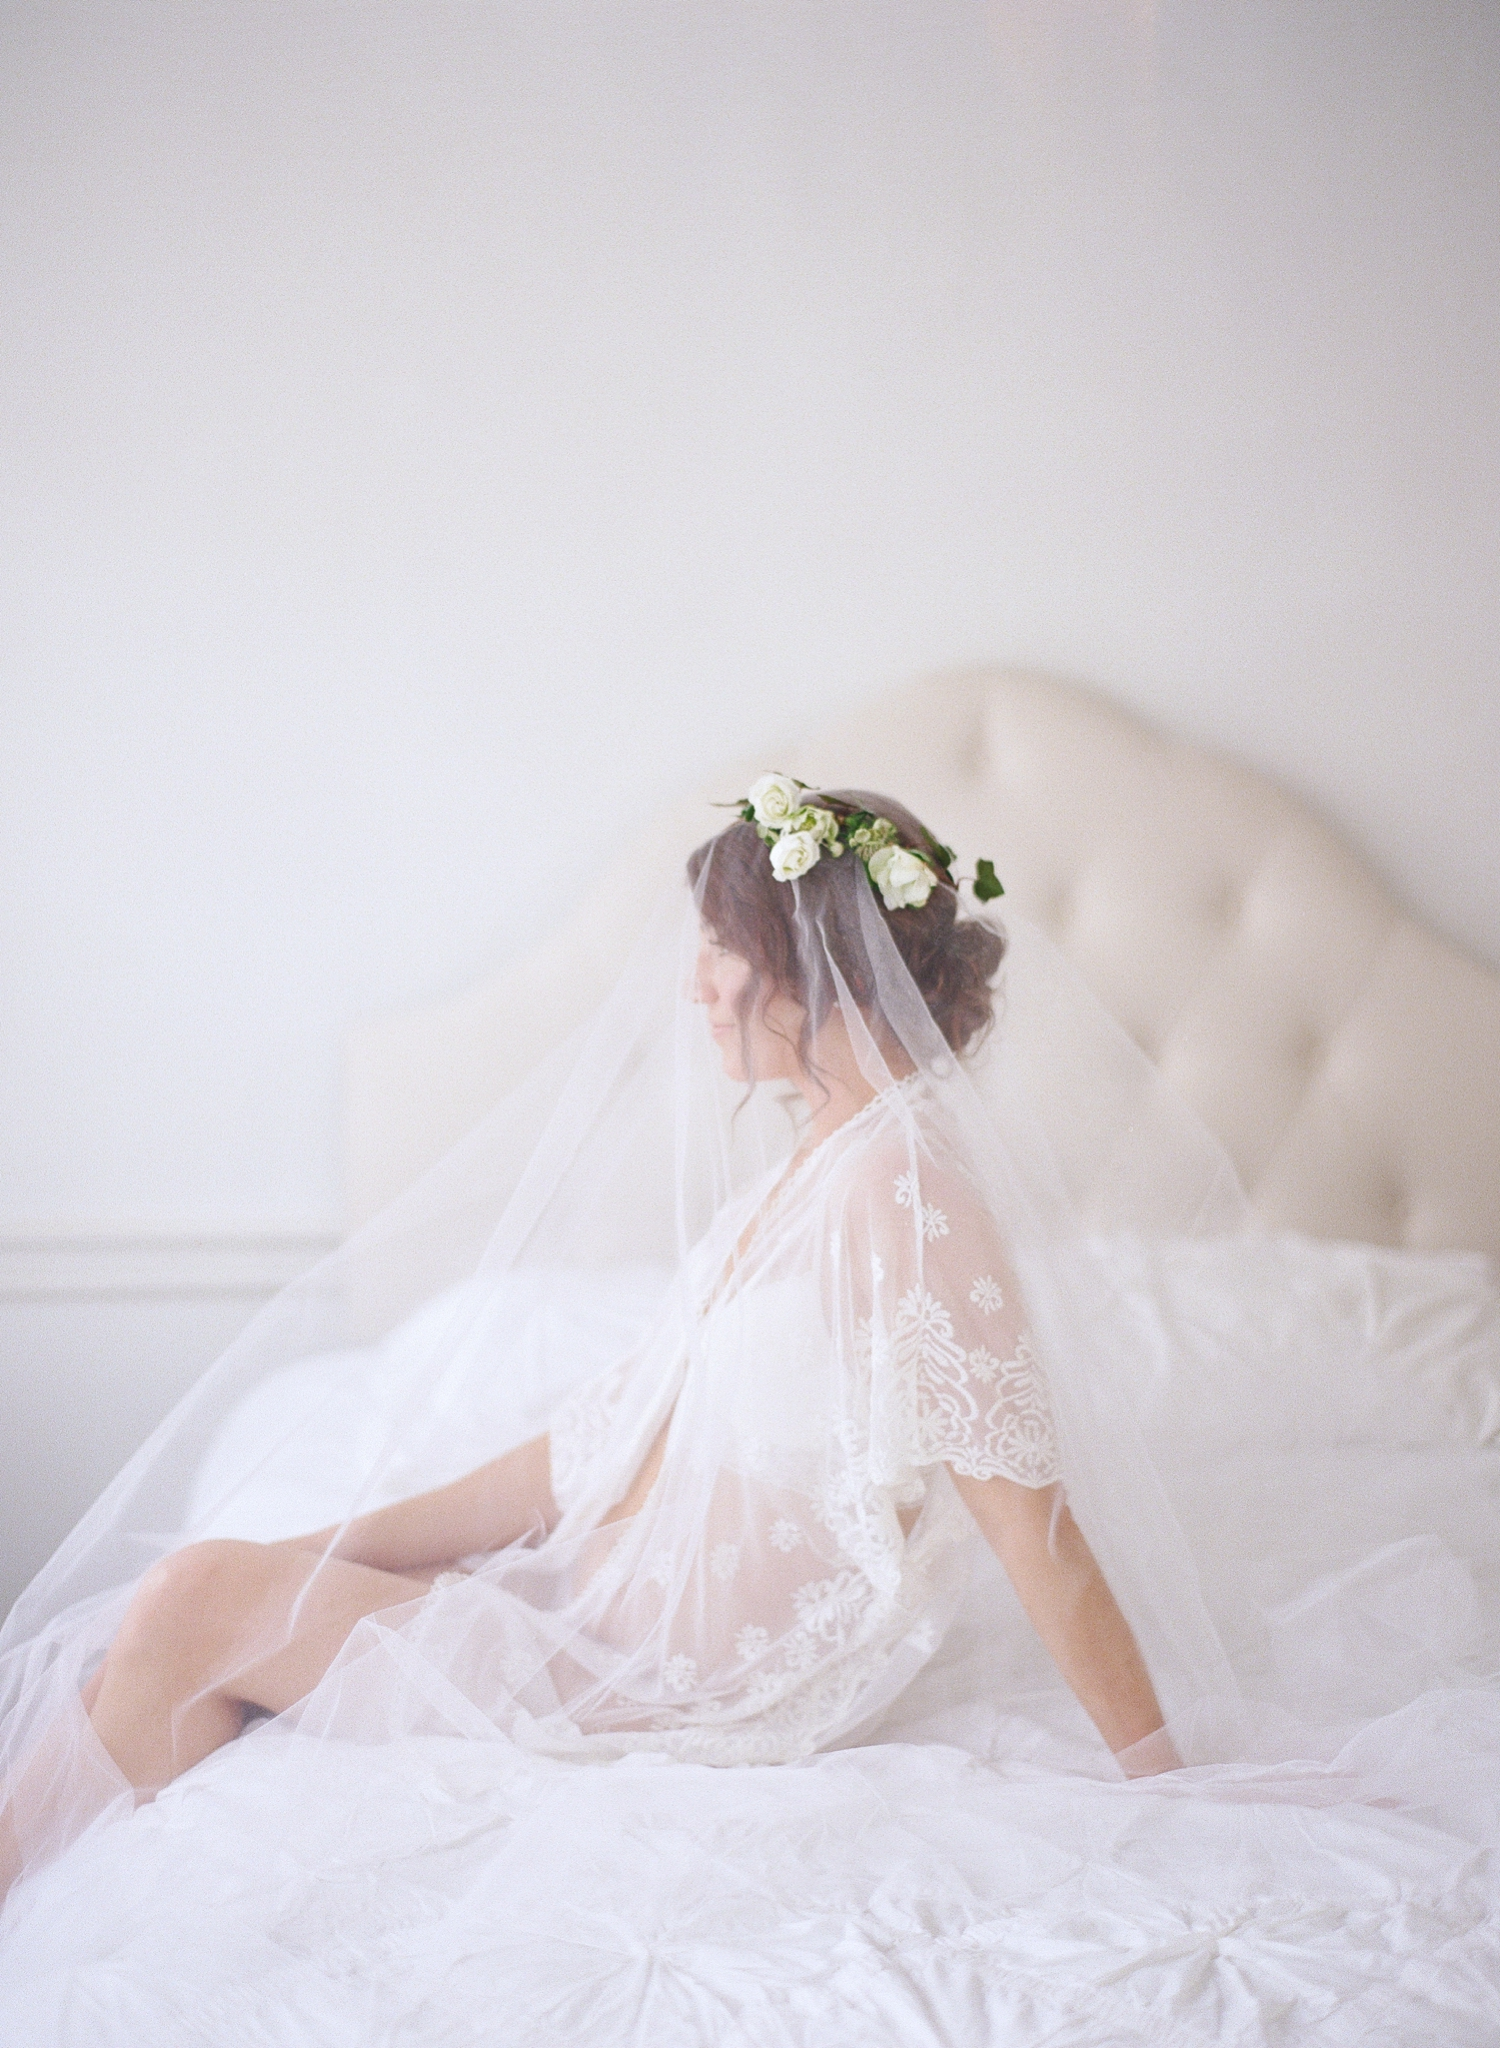 fine art film boudoir photographer, old town alexandria